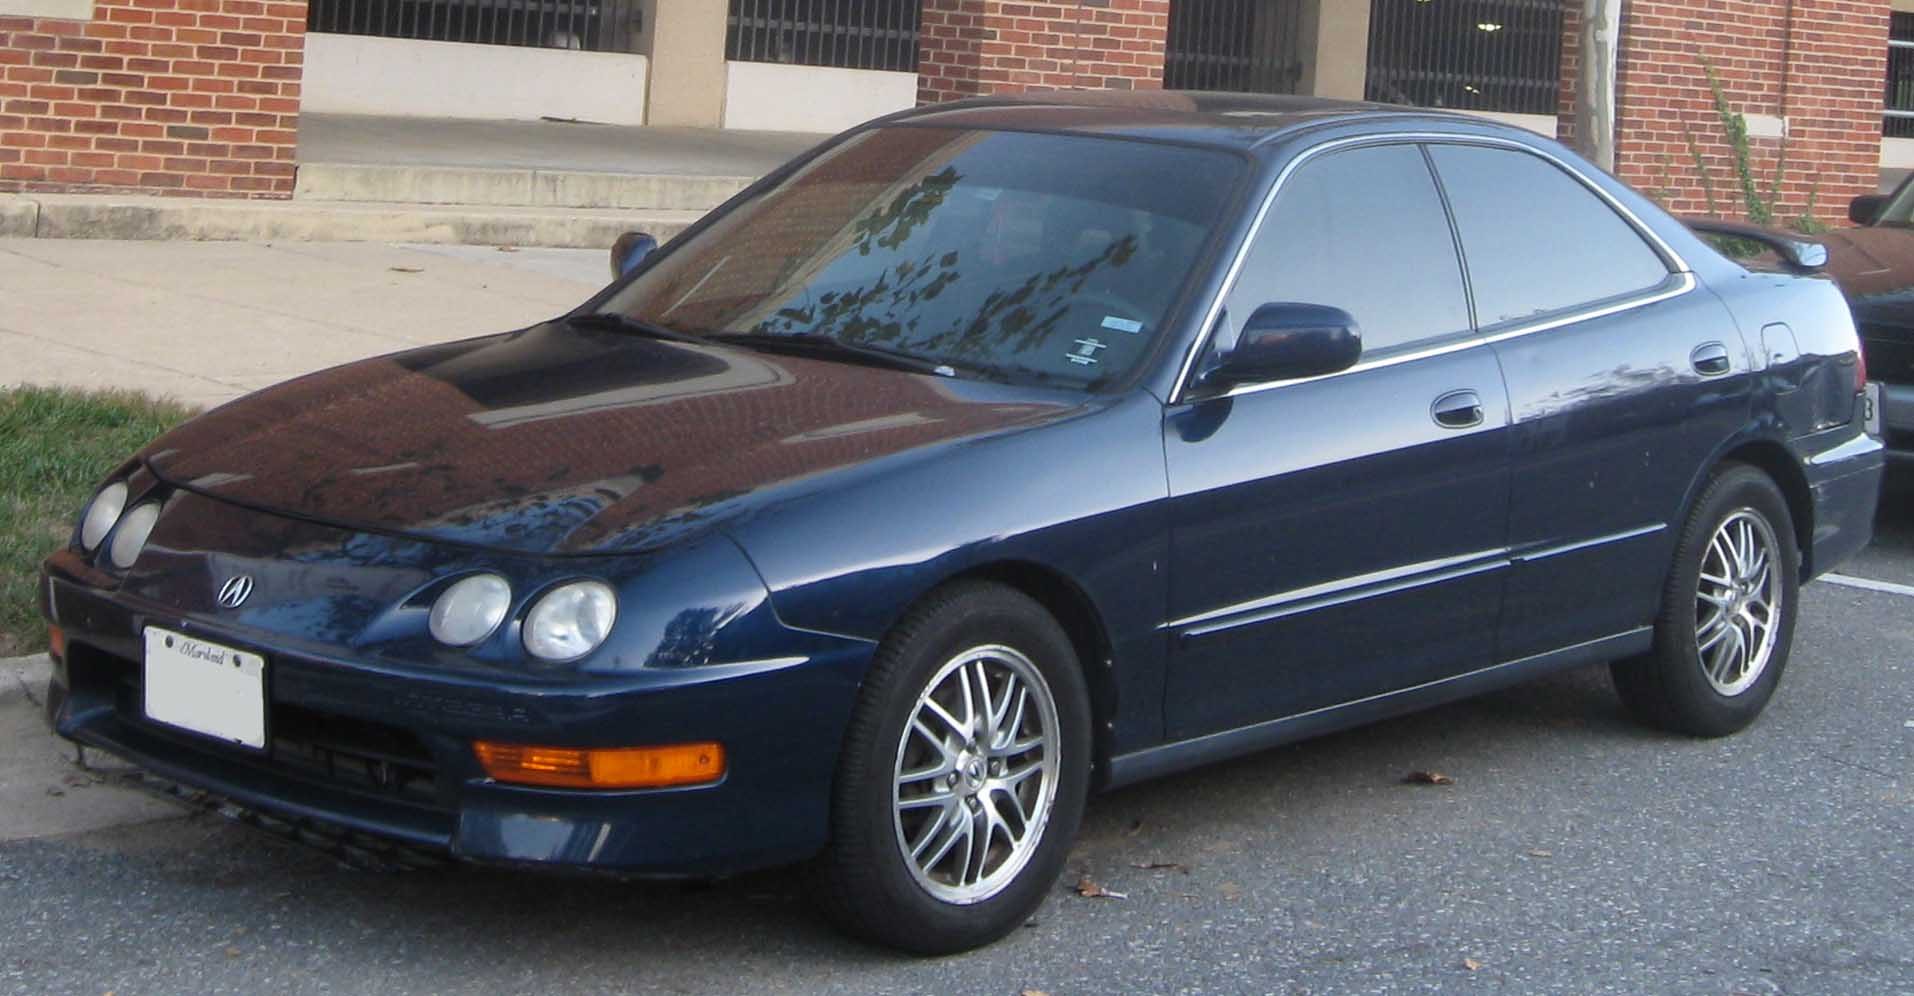 Fileacura Integra Sedan Wikimedia Commons 1995 Acura Fuse Box Diagram